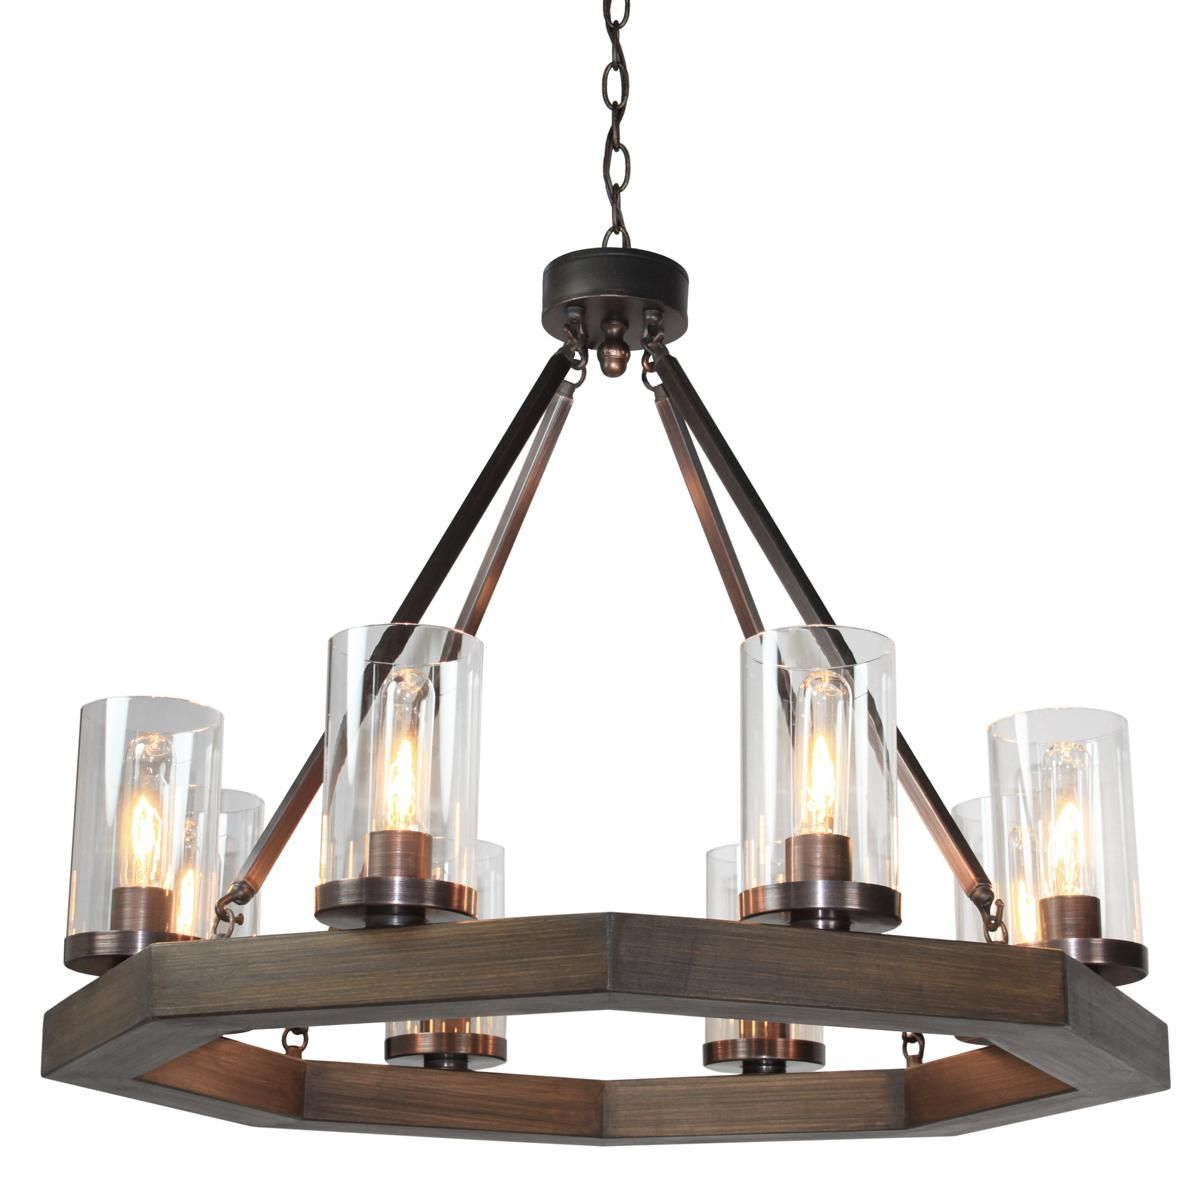 with rectangular en chandeliers light canada shade rustic and lighting pendant arturo home more lights categories bronze fans modern glass ceiling p chandelier rod depot fixture the